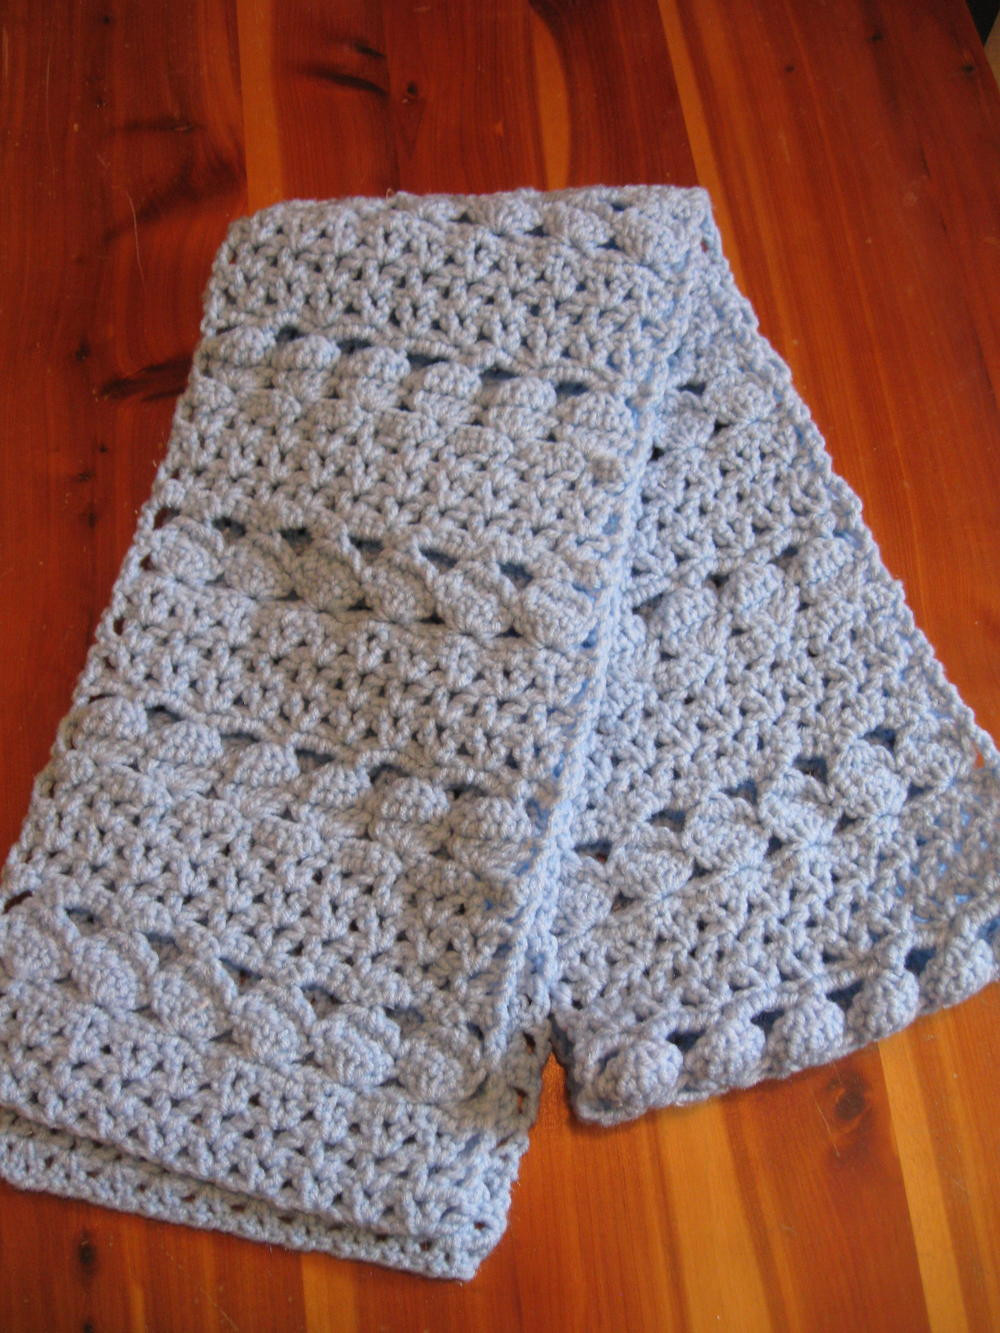 Best Of Cozy Blue Crochet Scarf Crochet Lace Stitches Of Great 43 Pics Crochet Lace Stitches